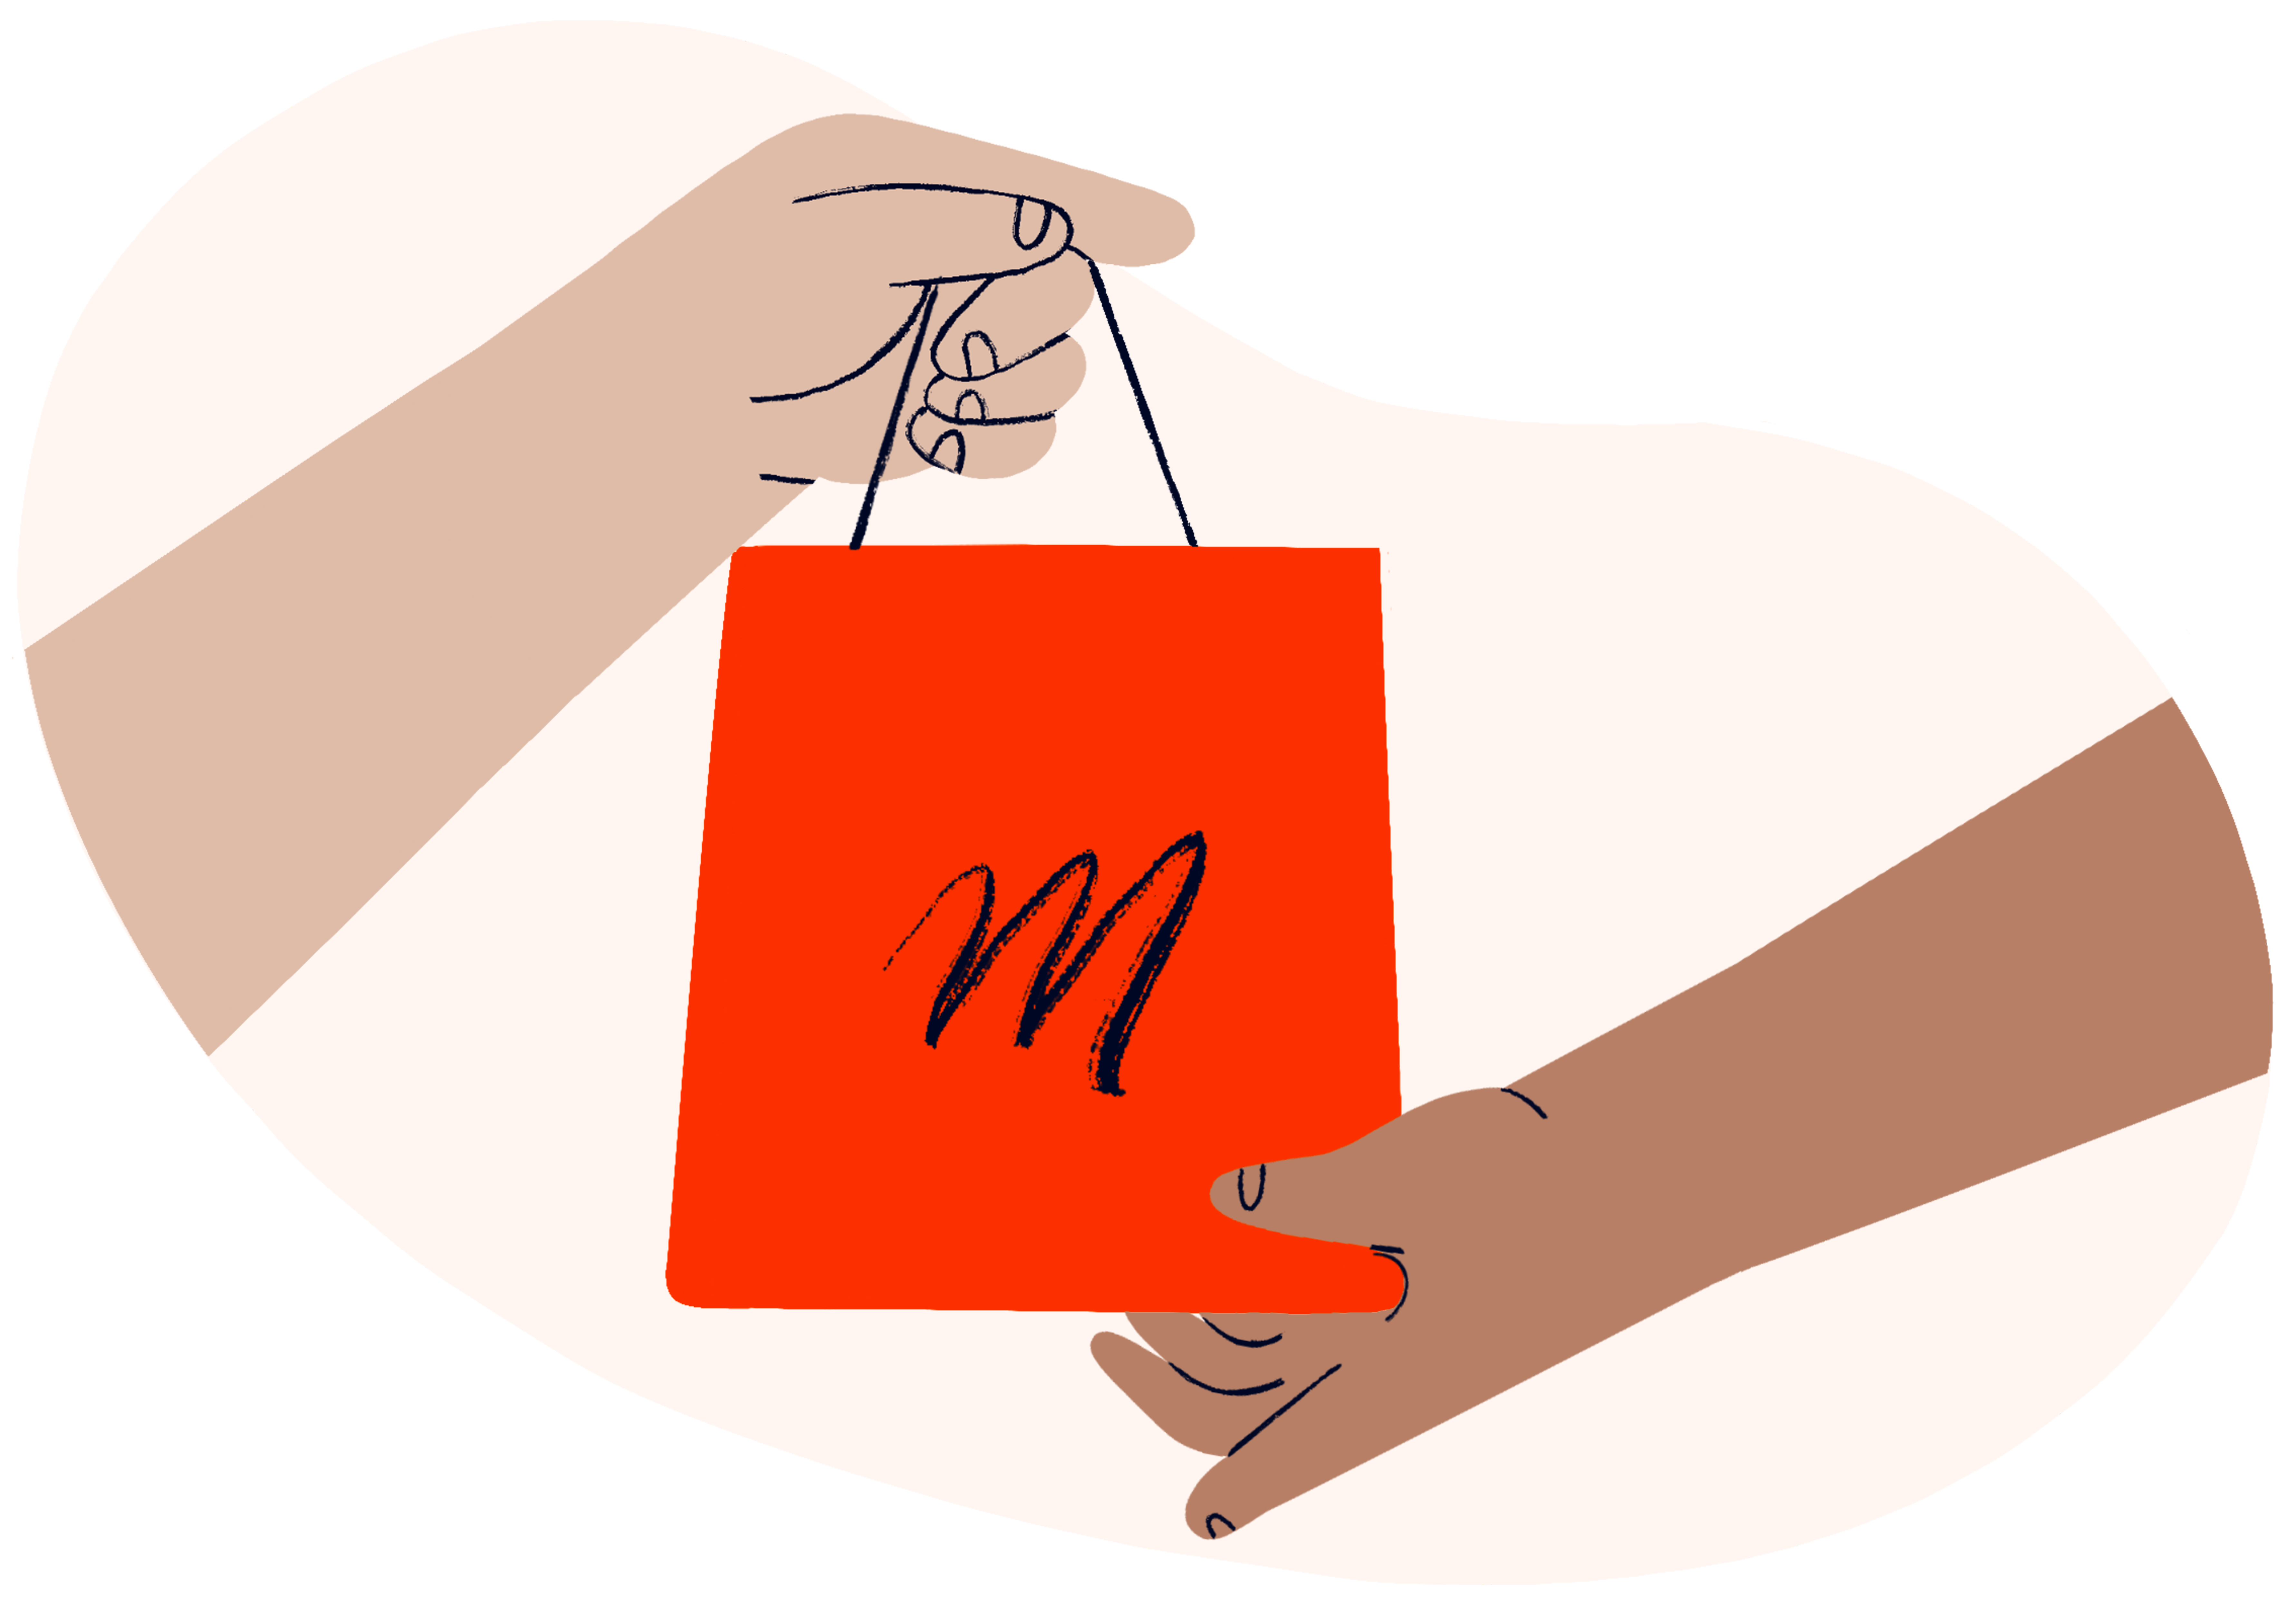 Two hands exchanging an orange coloured handbag with the MyMuse logo on it, representing MyMuse's return policy